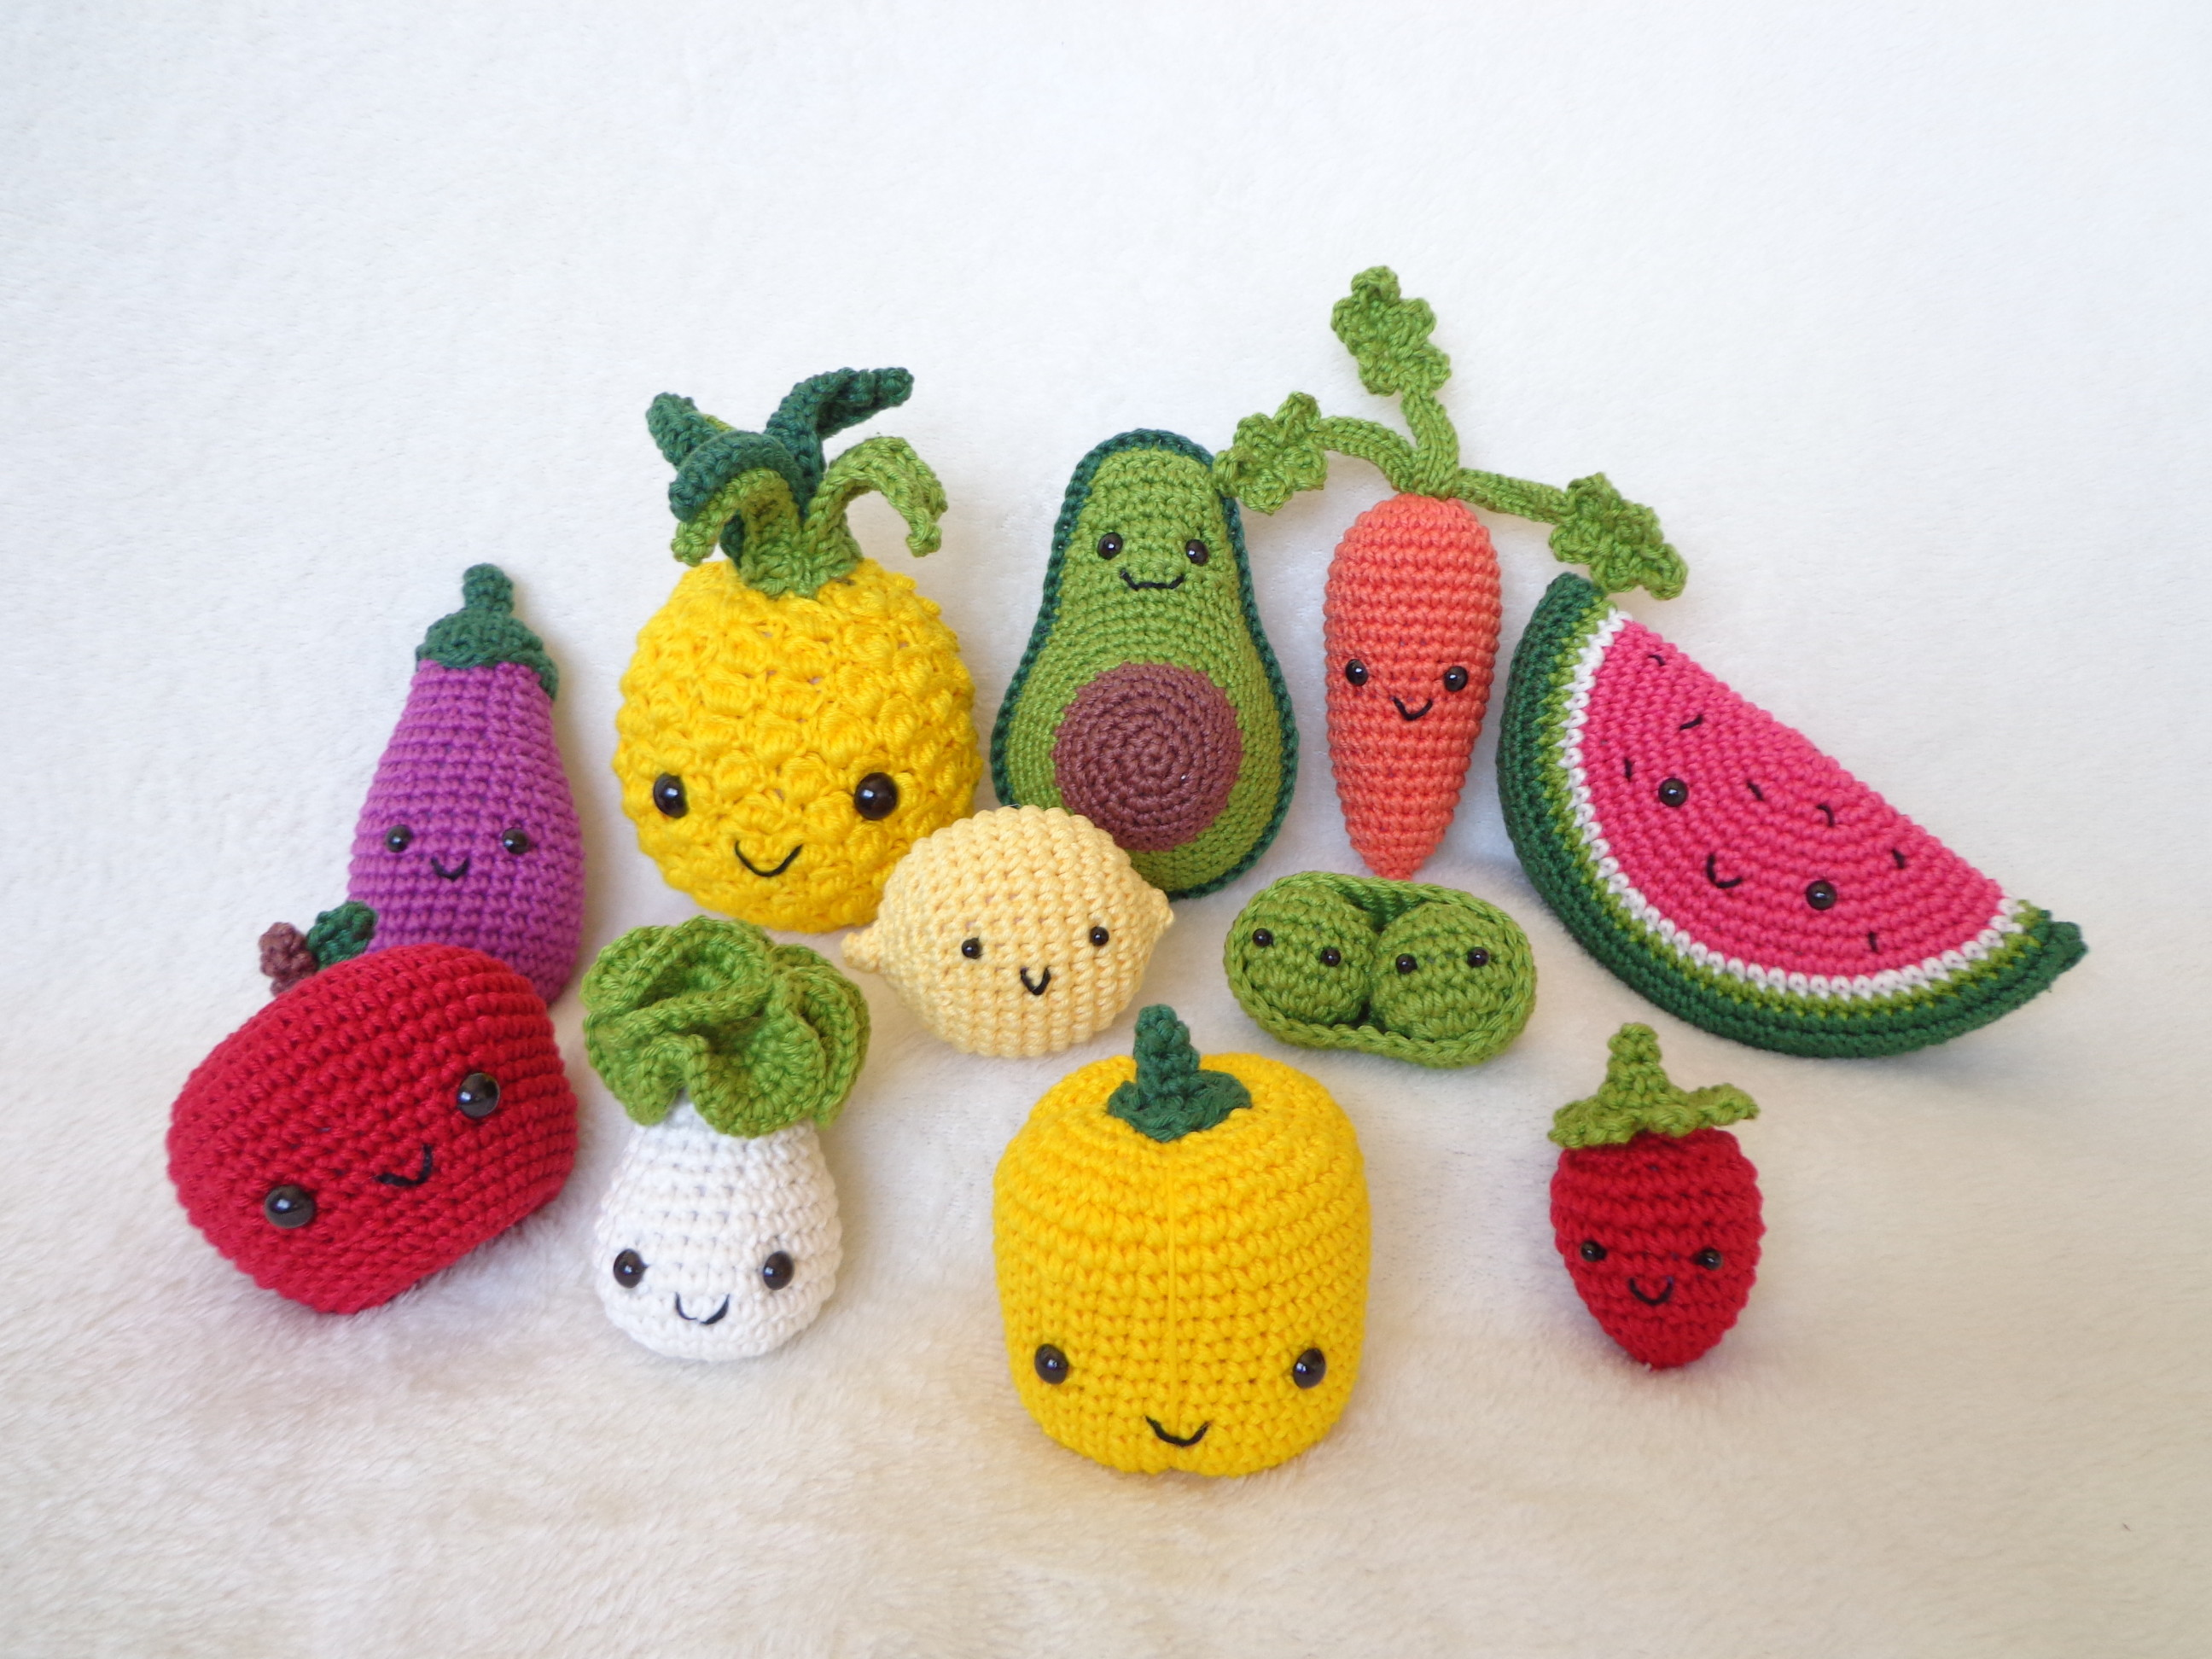 Crochet Amigurumi Fruits Free Patterns | Padrões de flores de ... | 1944x2592